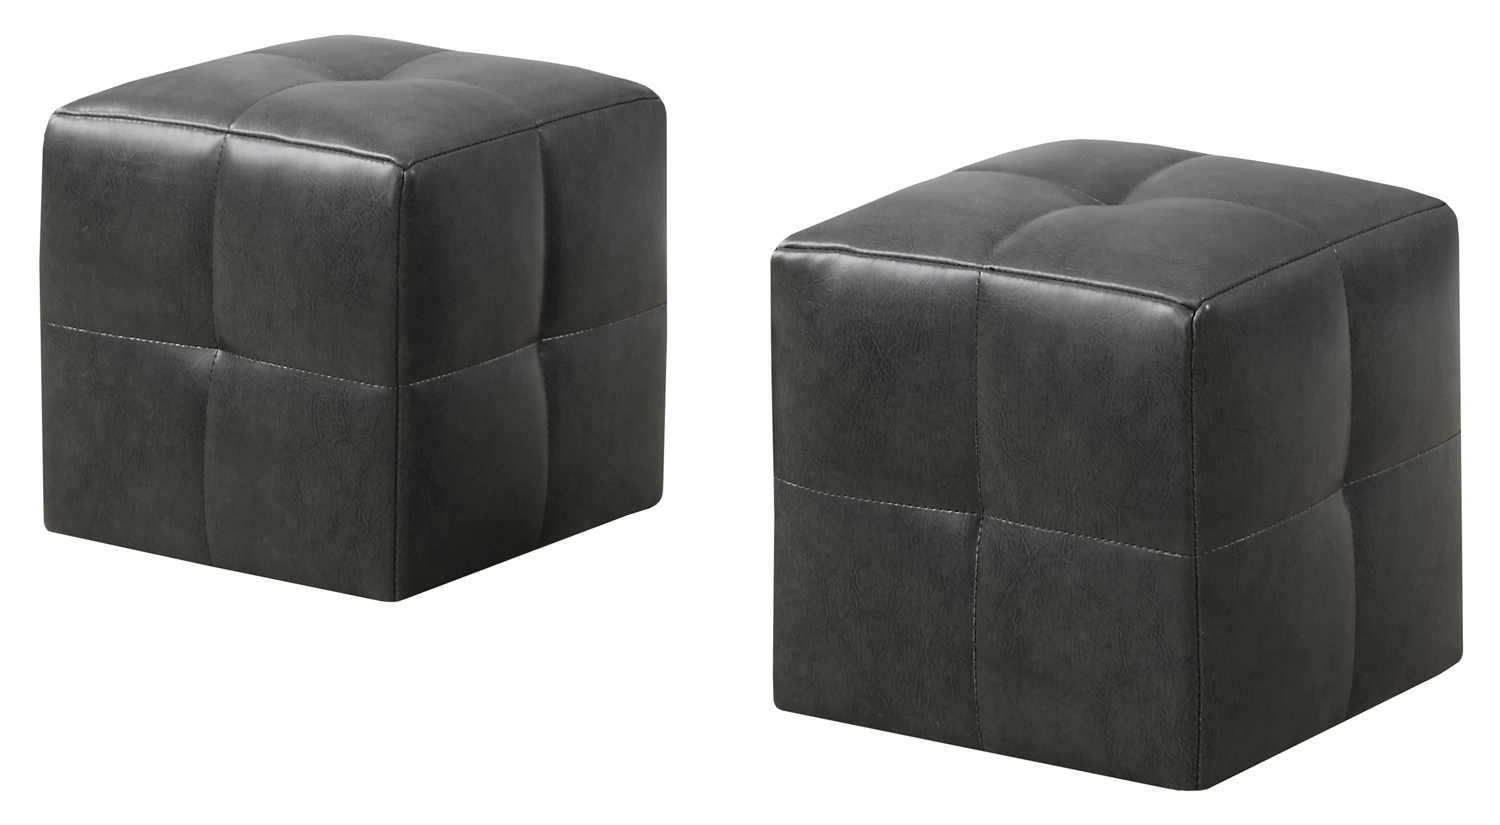 2 Piece Juvenile Ottoman Set, Charcoal Gray Leather-Look